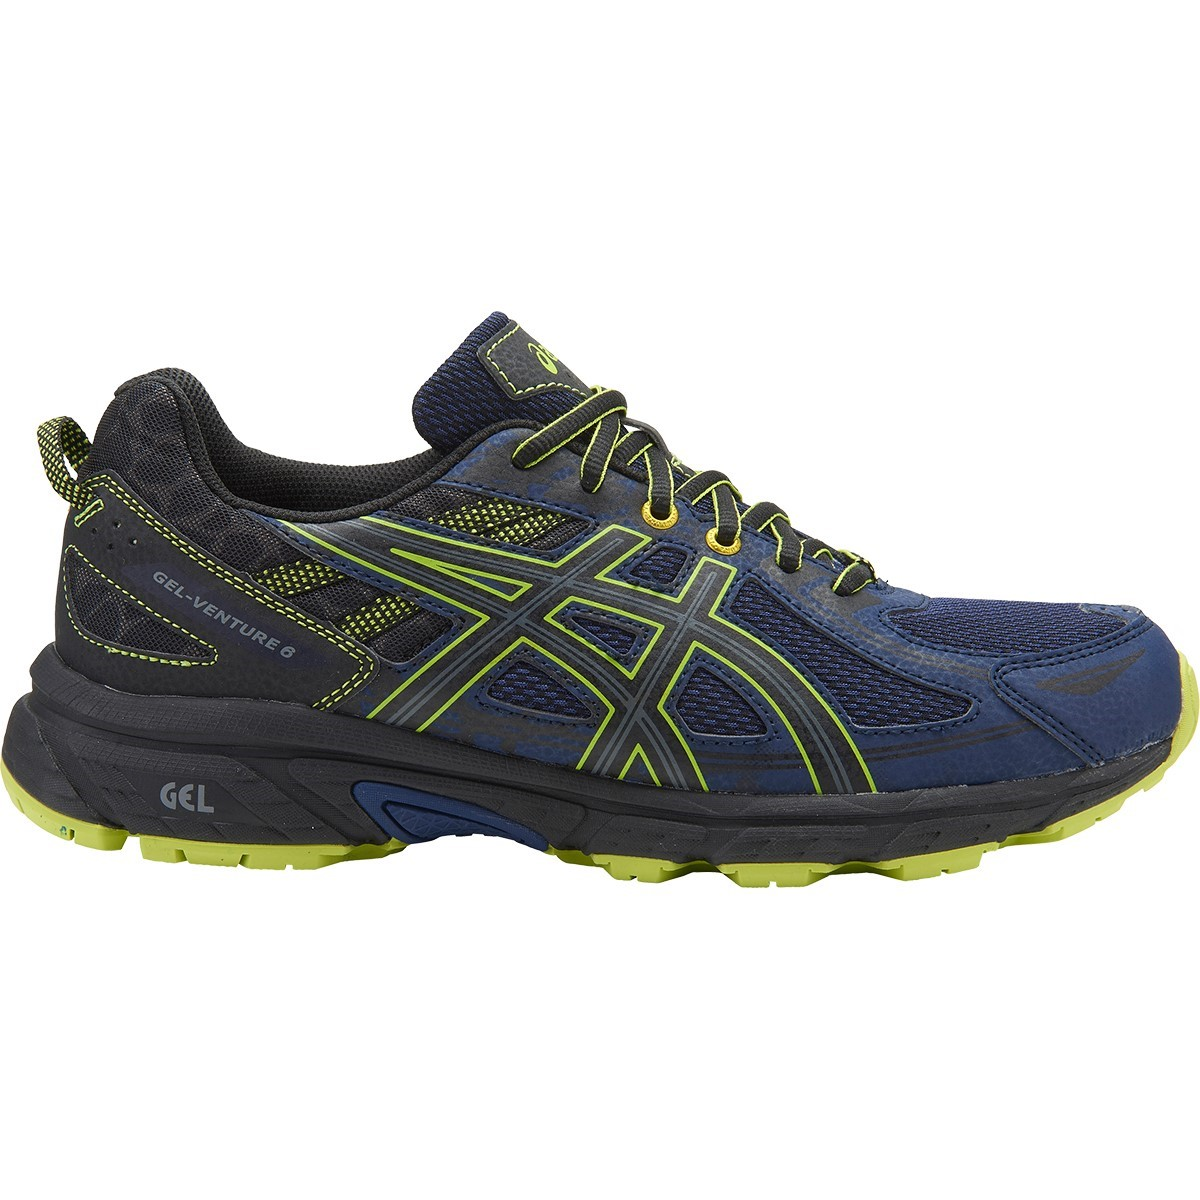 Who Sells Asics Running Shoes